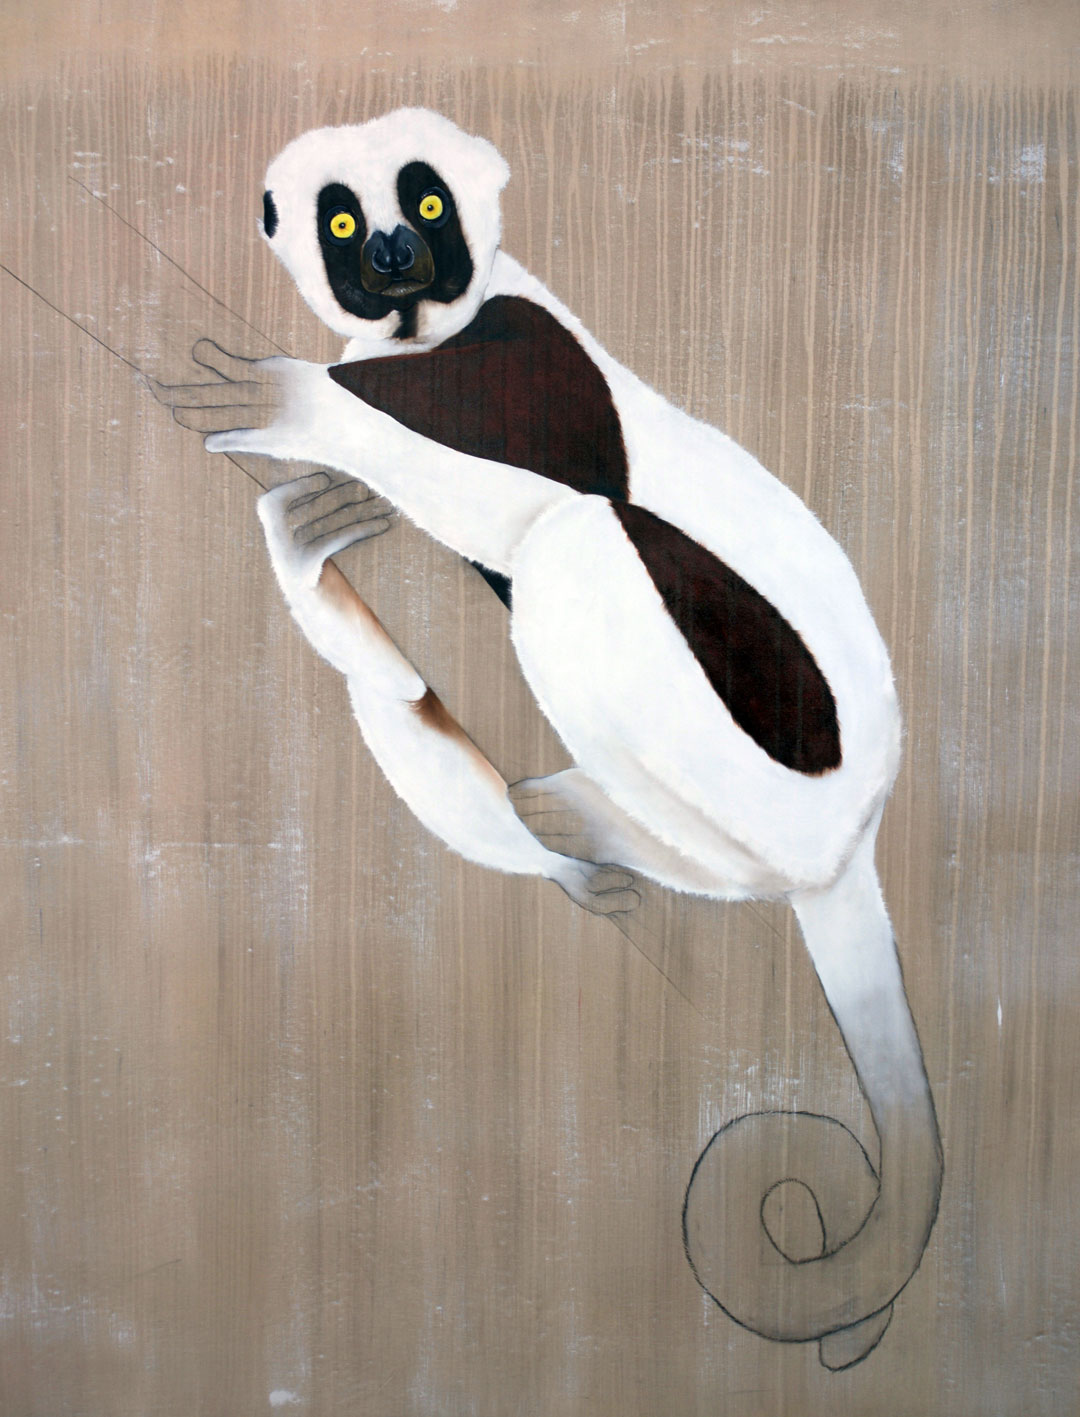 Propithecus coquereli sifaka-coquereli-lemur-threatened-endangered-extinction Thierry Bisch painter animals painting art decoration hotel design interior luxury nature biodiversity conservation